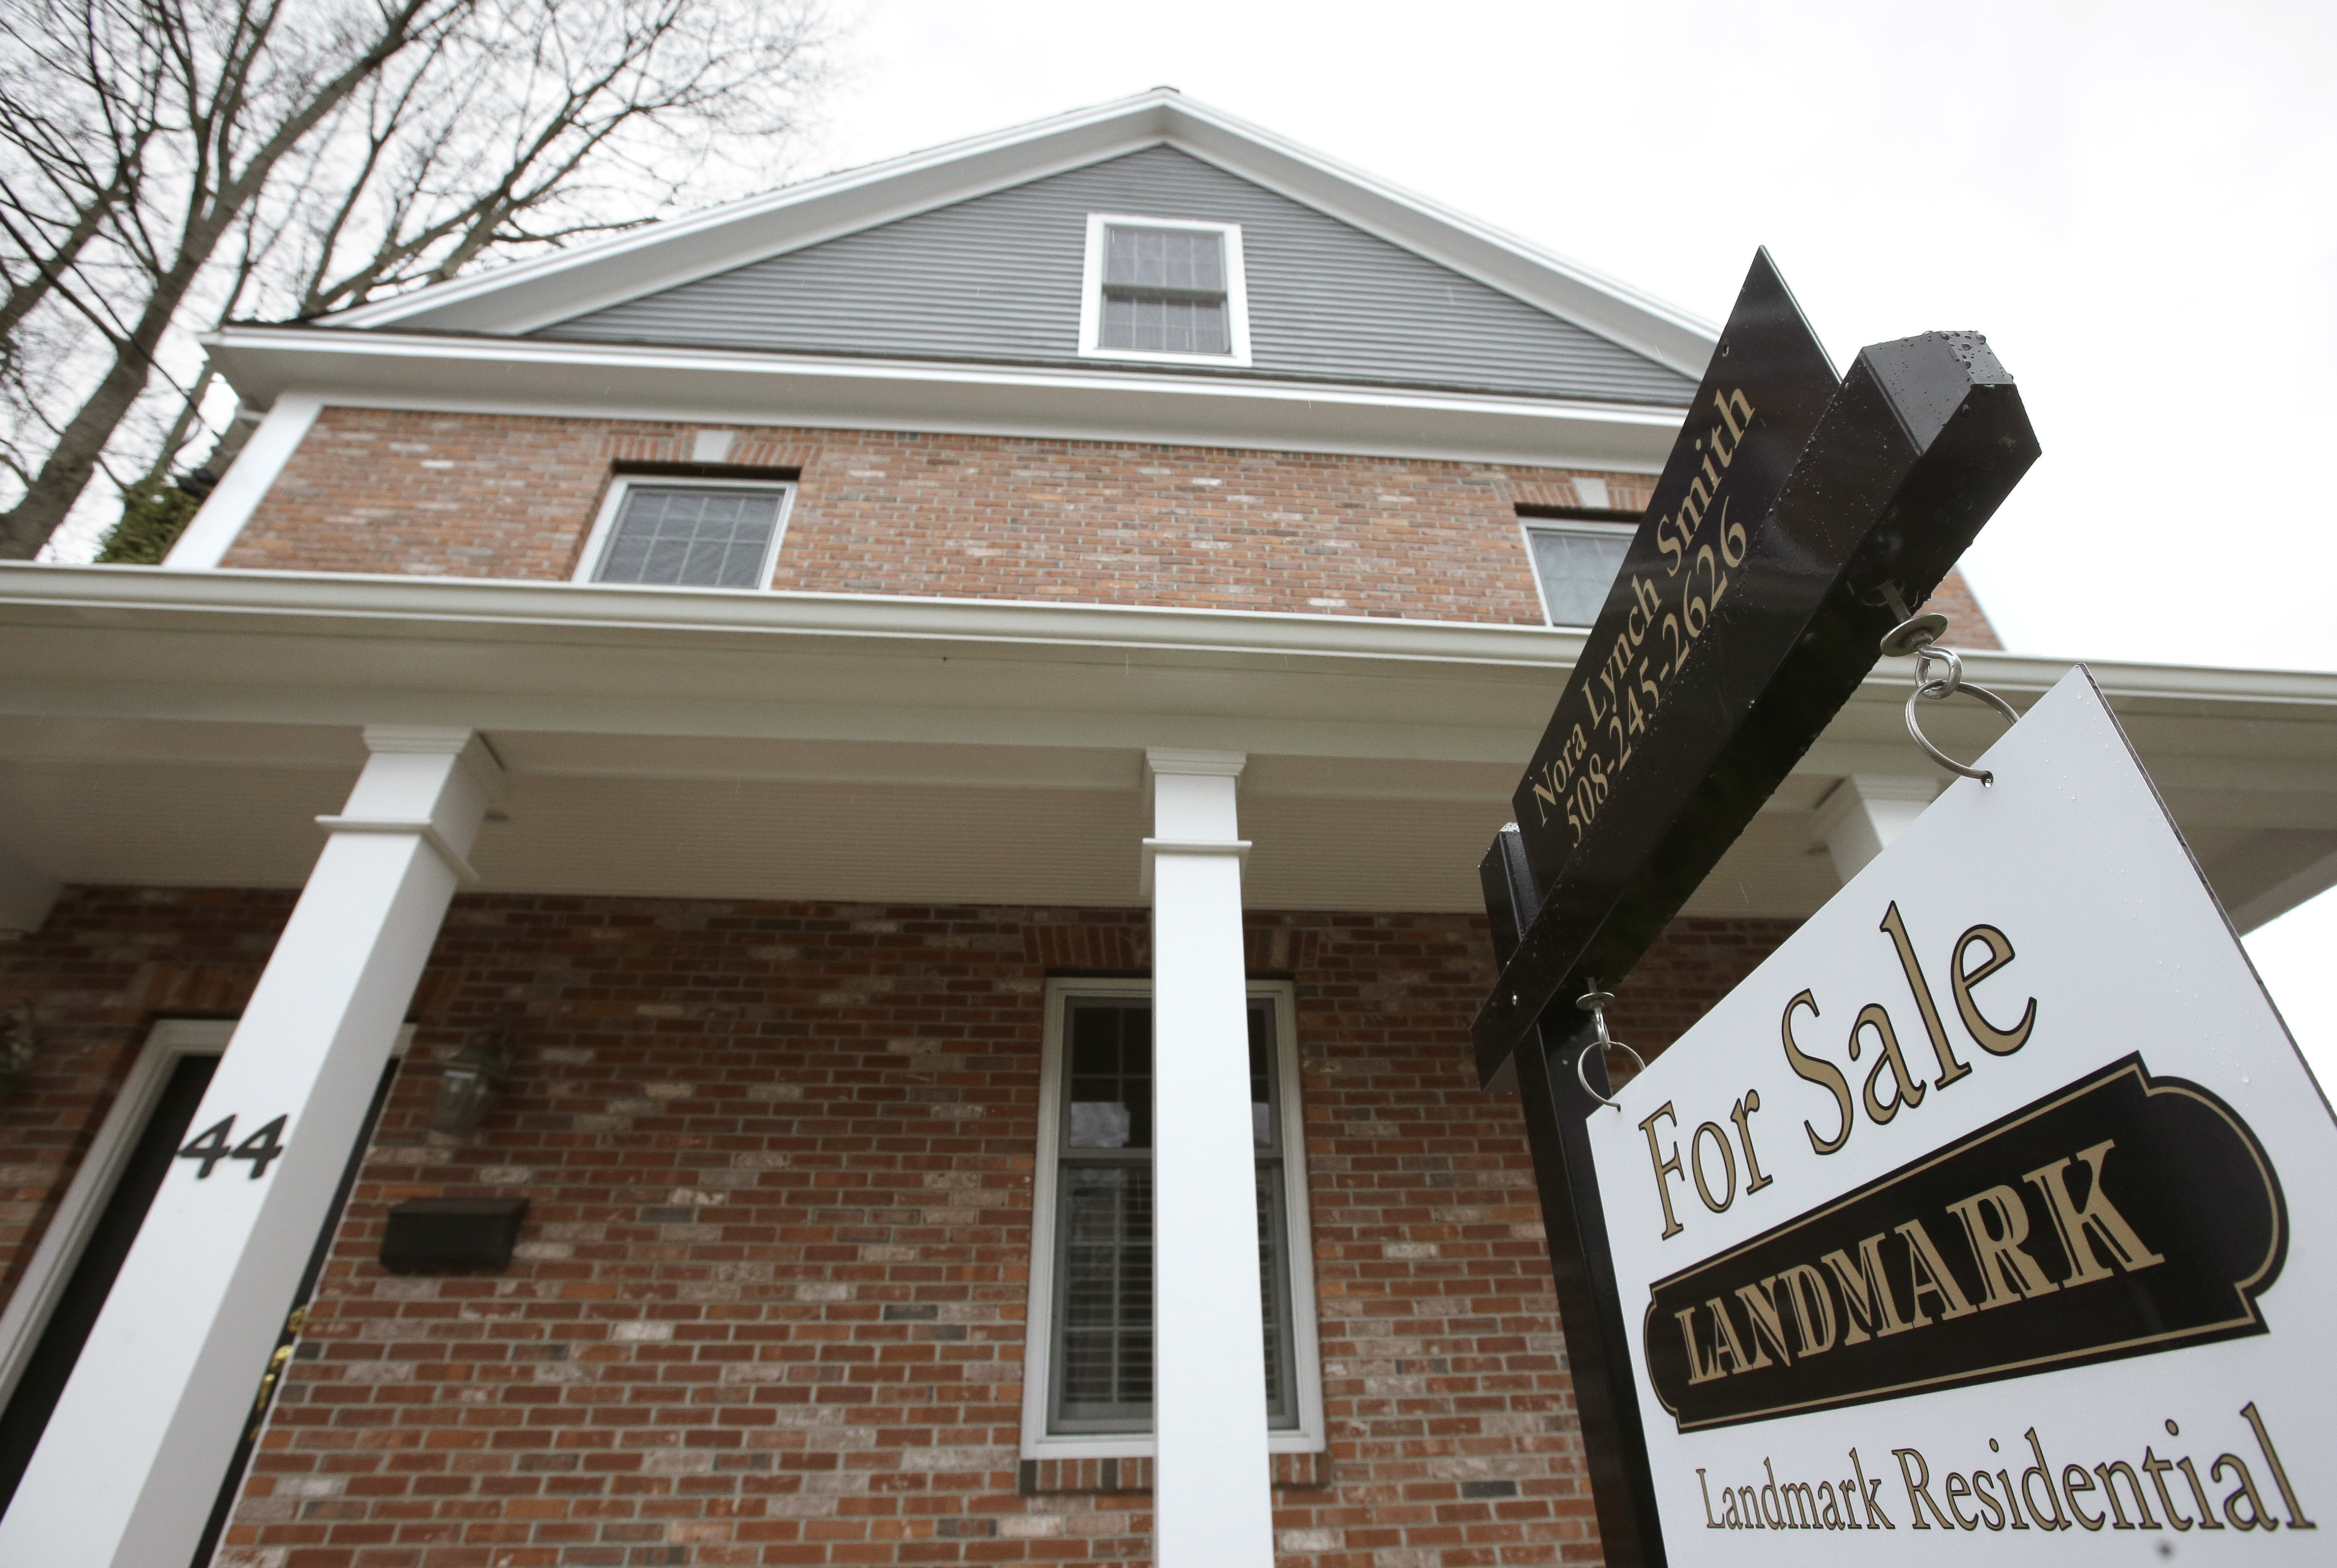 It's a sellers' market, but where are the sellers? - The Boston Globe